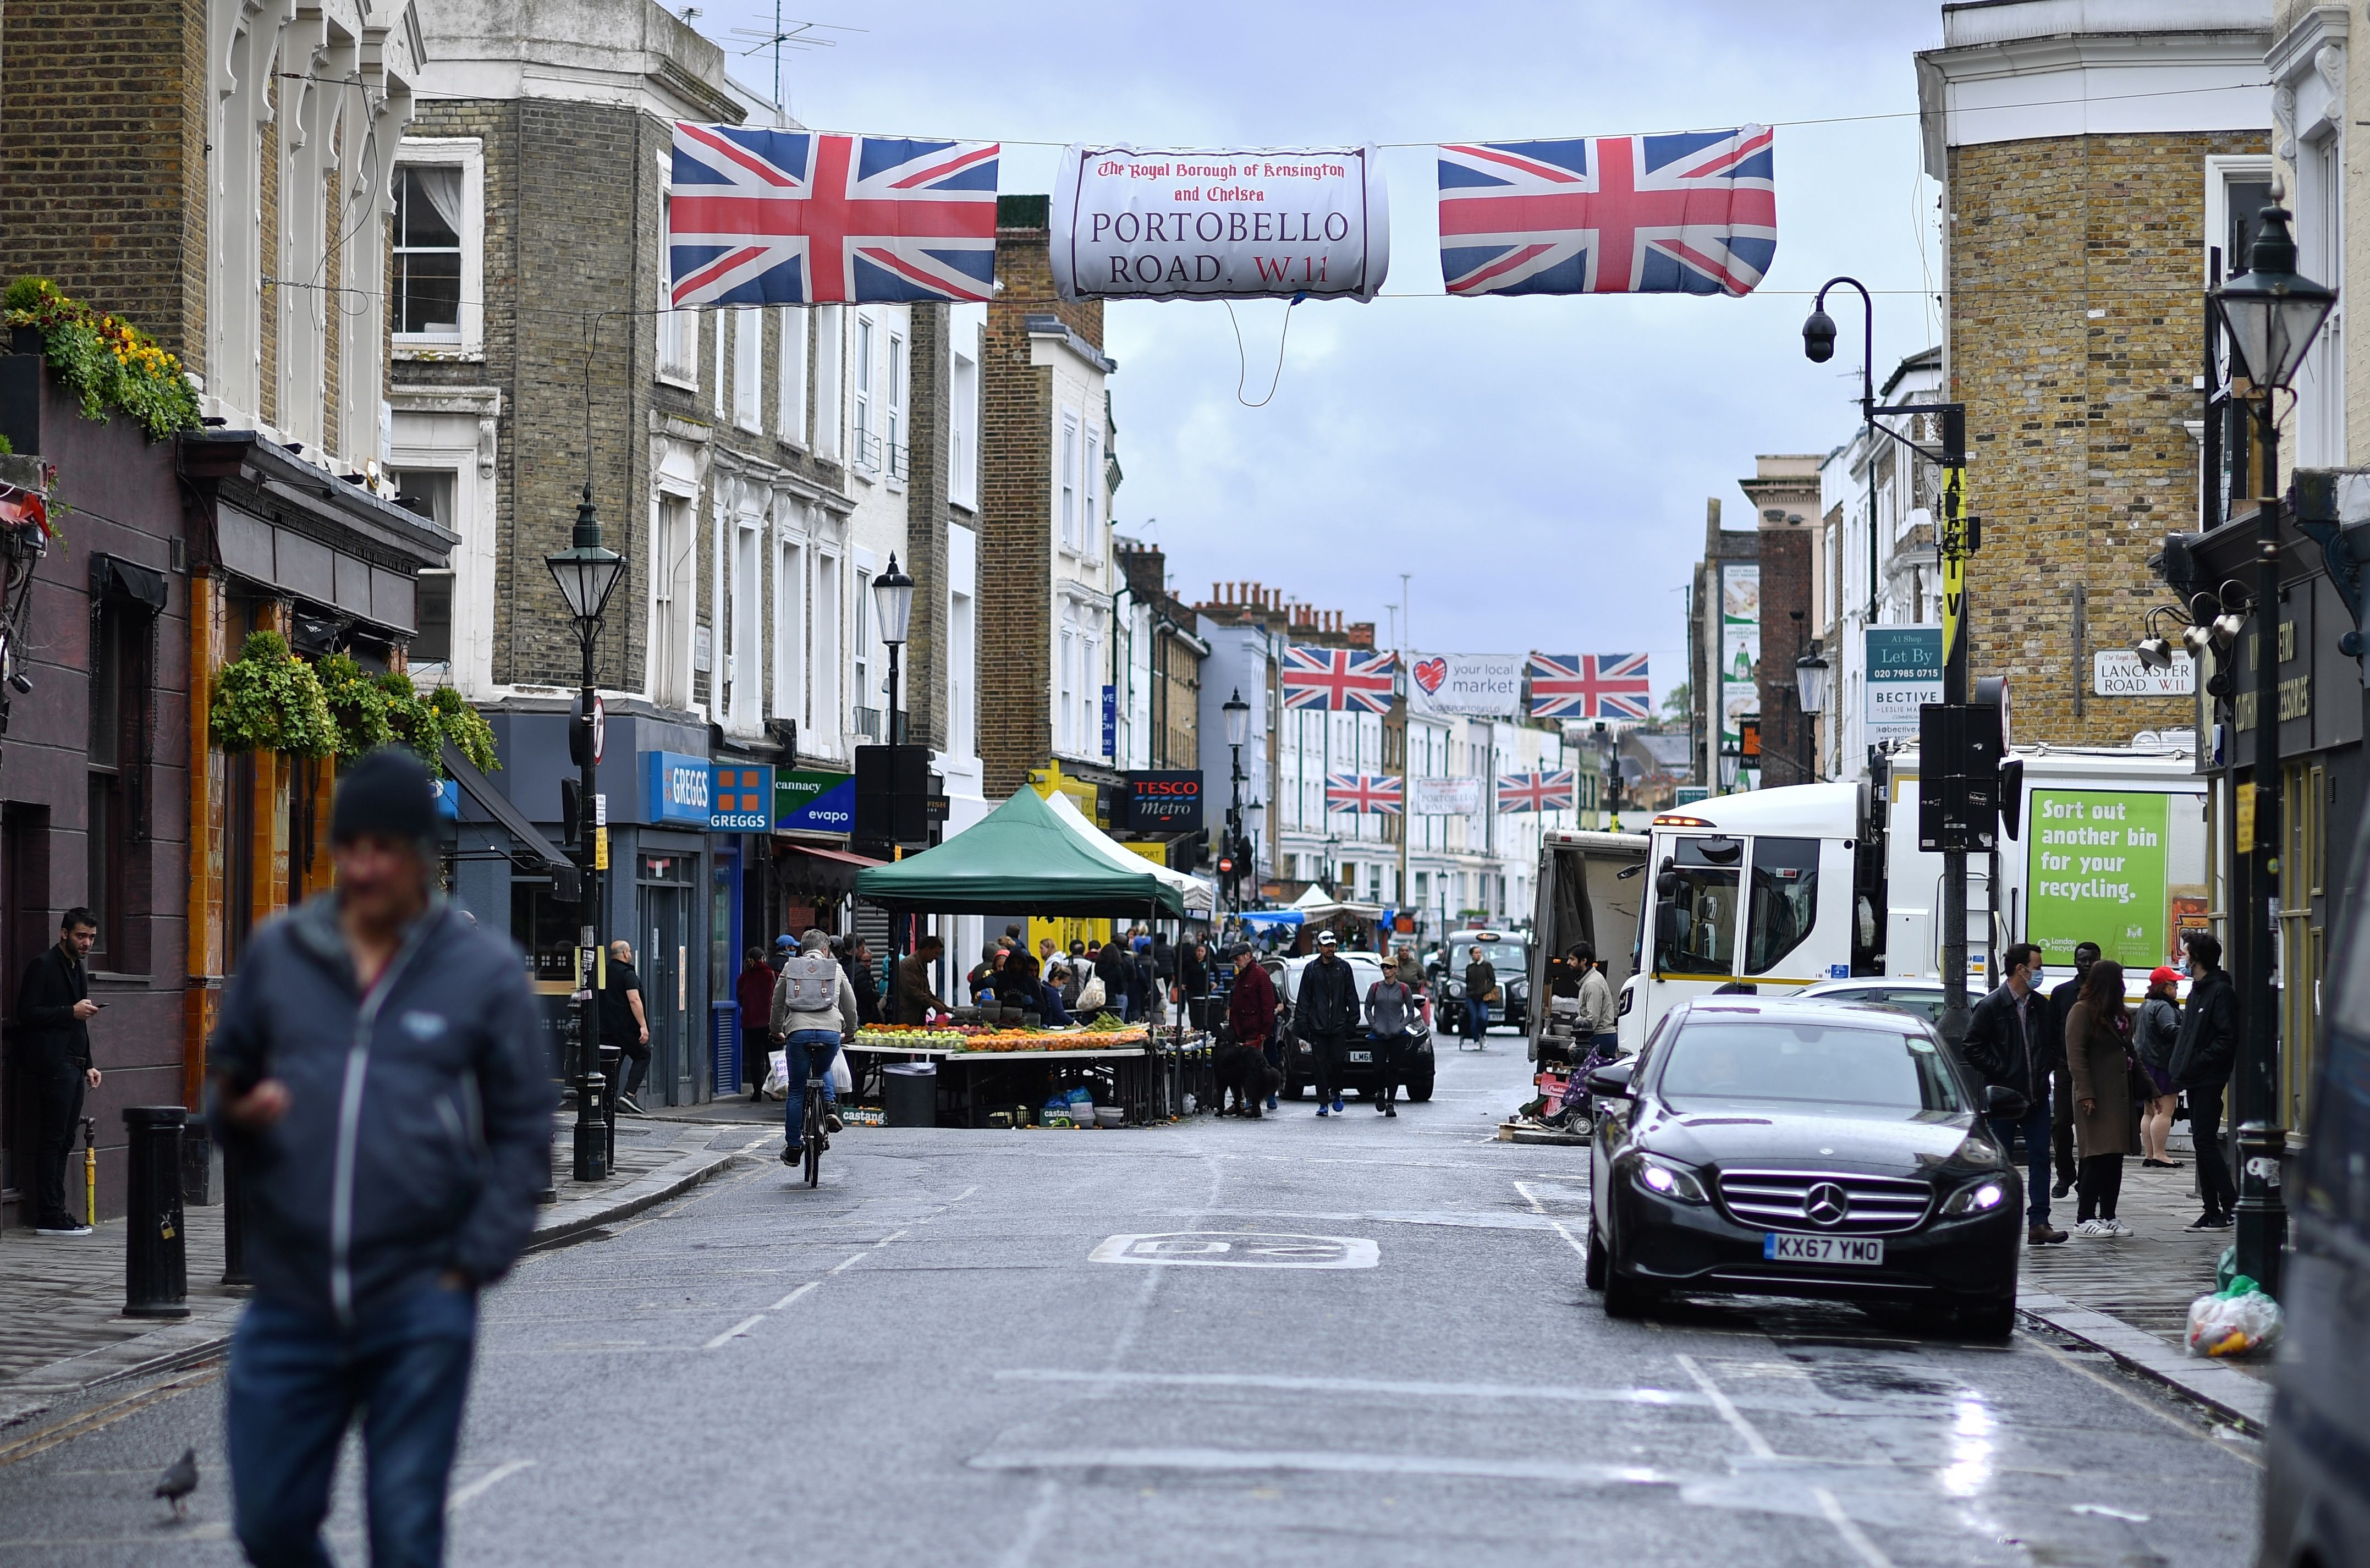 People walk past stalls at an almost deserted Portobello Road Market in London on June 6, 2020, as lockdown measures are partially eased during the novel coronavirus COVID-19 pandemic. - Outdoor markets swung open their gates on June 1, and car showrooms tried to lure back customers and recoup losses suffered since Britain effectively shut down for business on March 23, to ward off a disease that has now officially claimed more than 40,000 lives in the country. Britain's Health Ministry said 40,261 people who tested positive for COVID-19 had died as of 0800 GMT on Friday June 5. (Photo by Ben STANSALL / AFP) (Photo by BEN STANSALL/AFP via Getty Images)